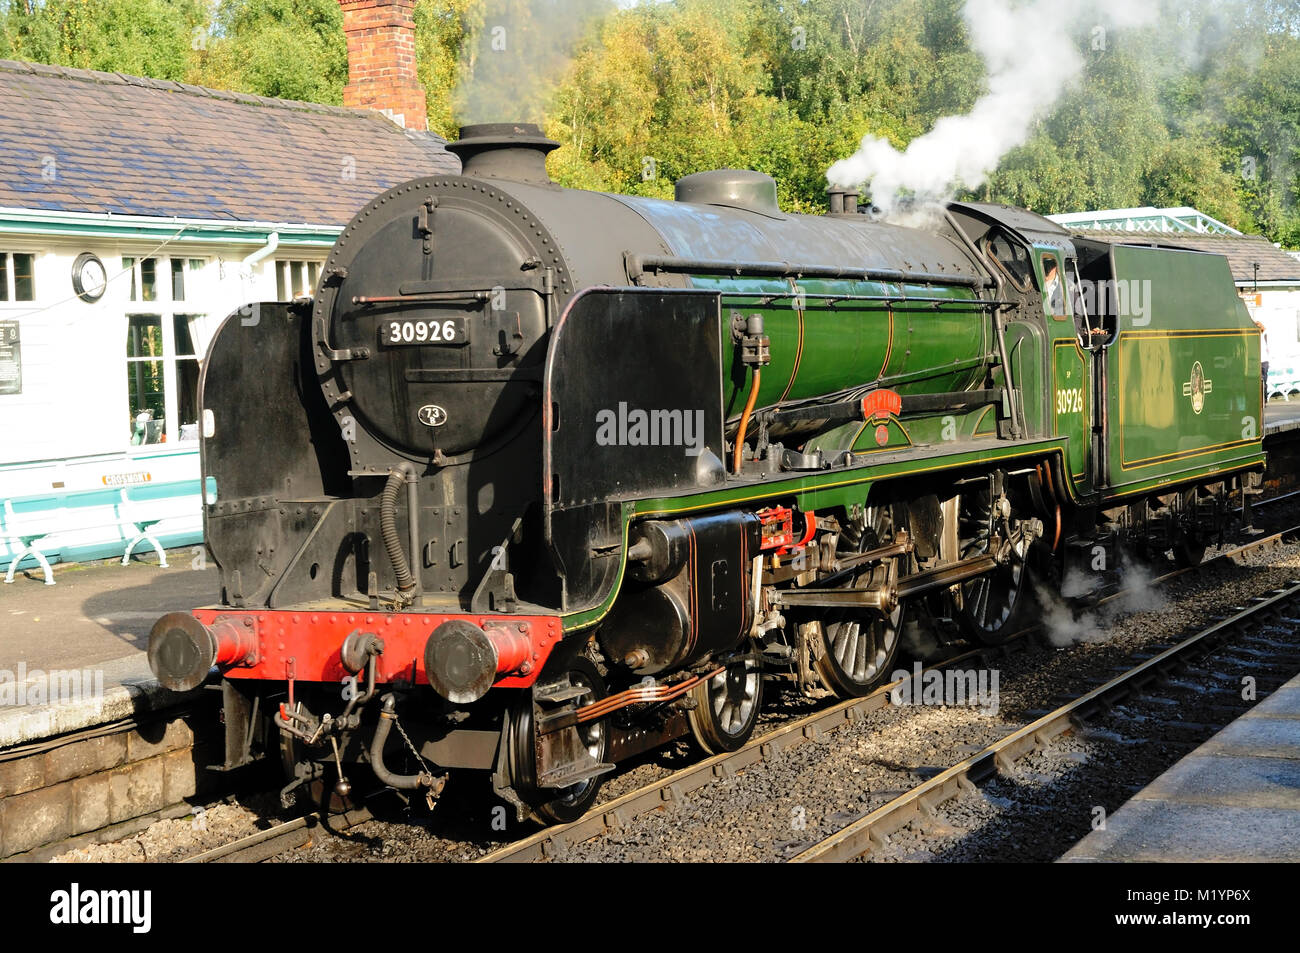 SR 'Schools' class No 30926 'Repton' standing at platform 2 at Grosmont station on the North Yorkshire - Stock Image